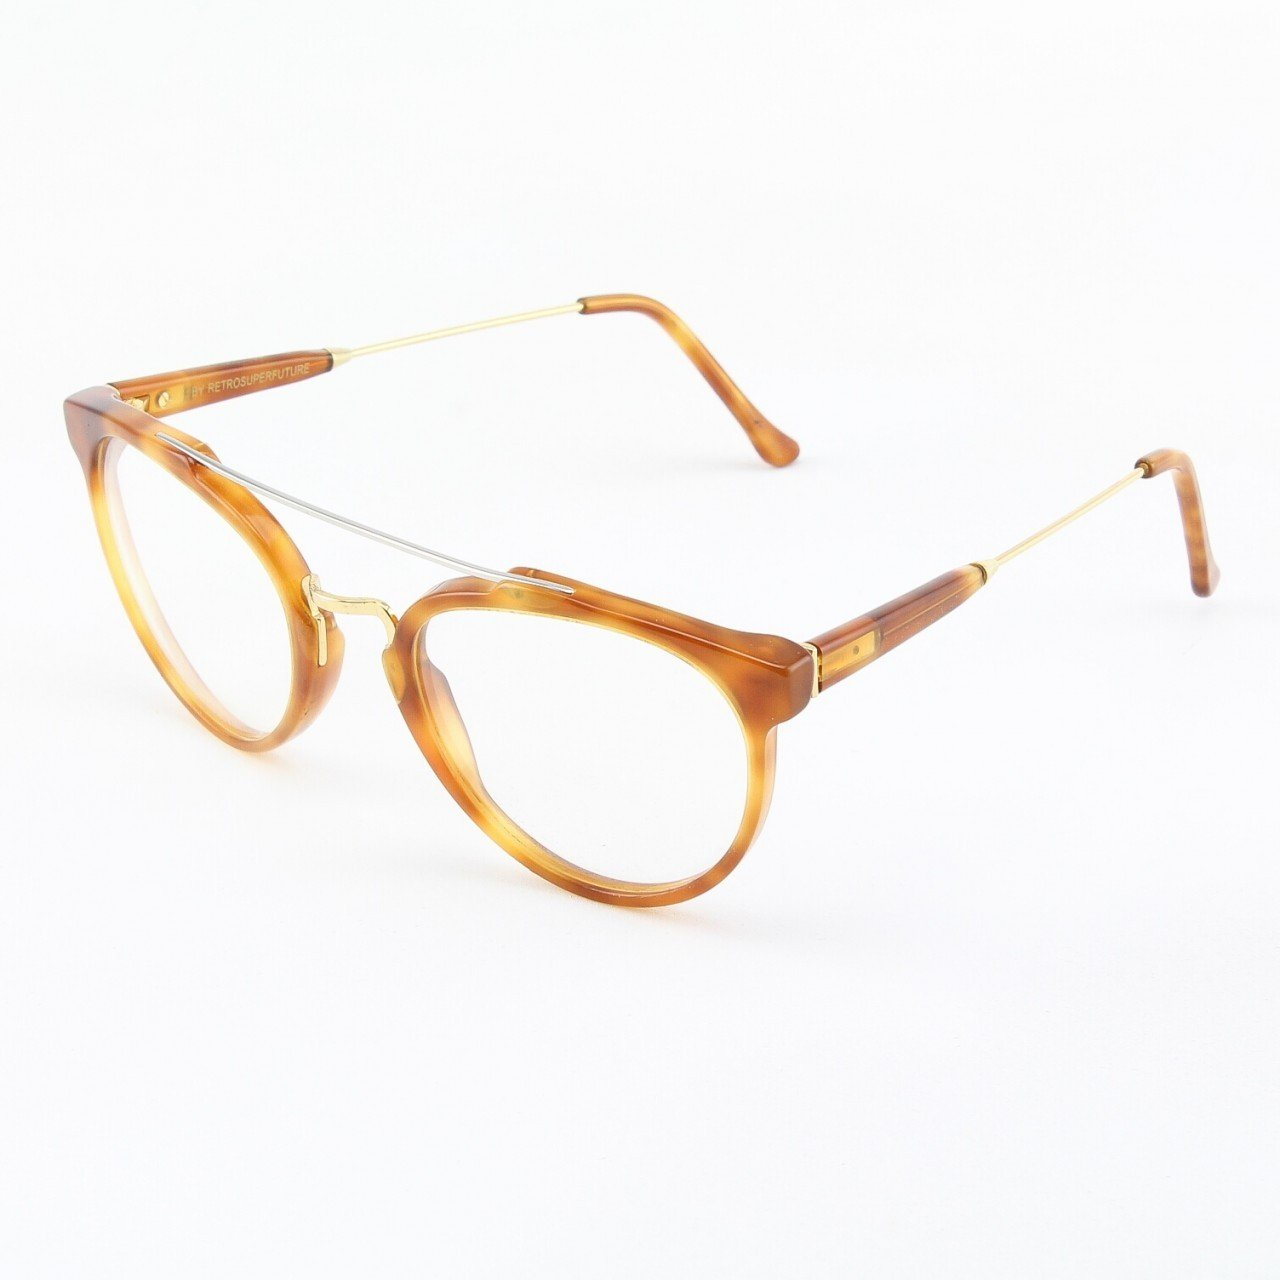 Super Giaguaro 628/0A Eyeglasses Havana with Clear Zeiss Lenses by RETROSUPERFUTURE